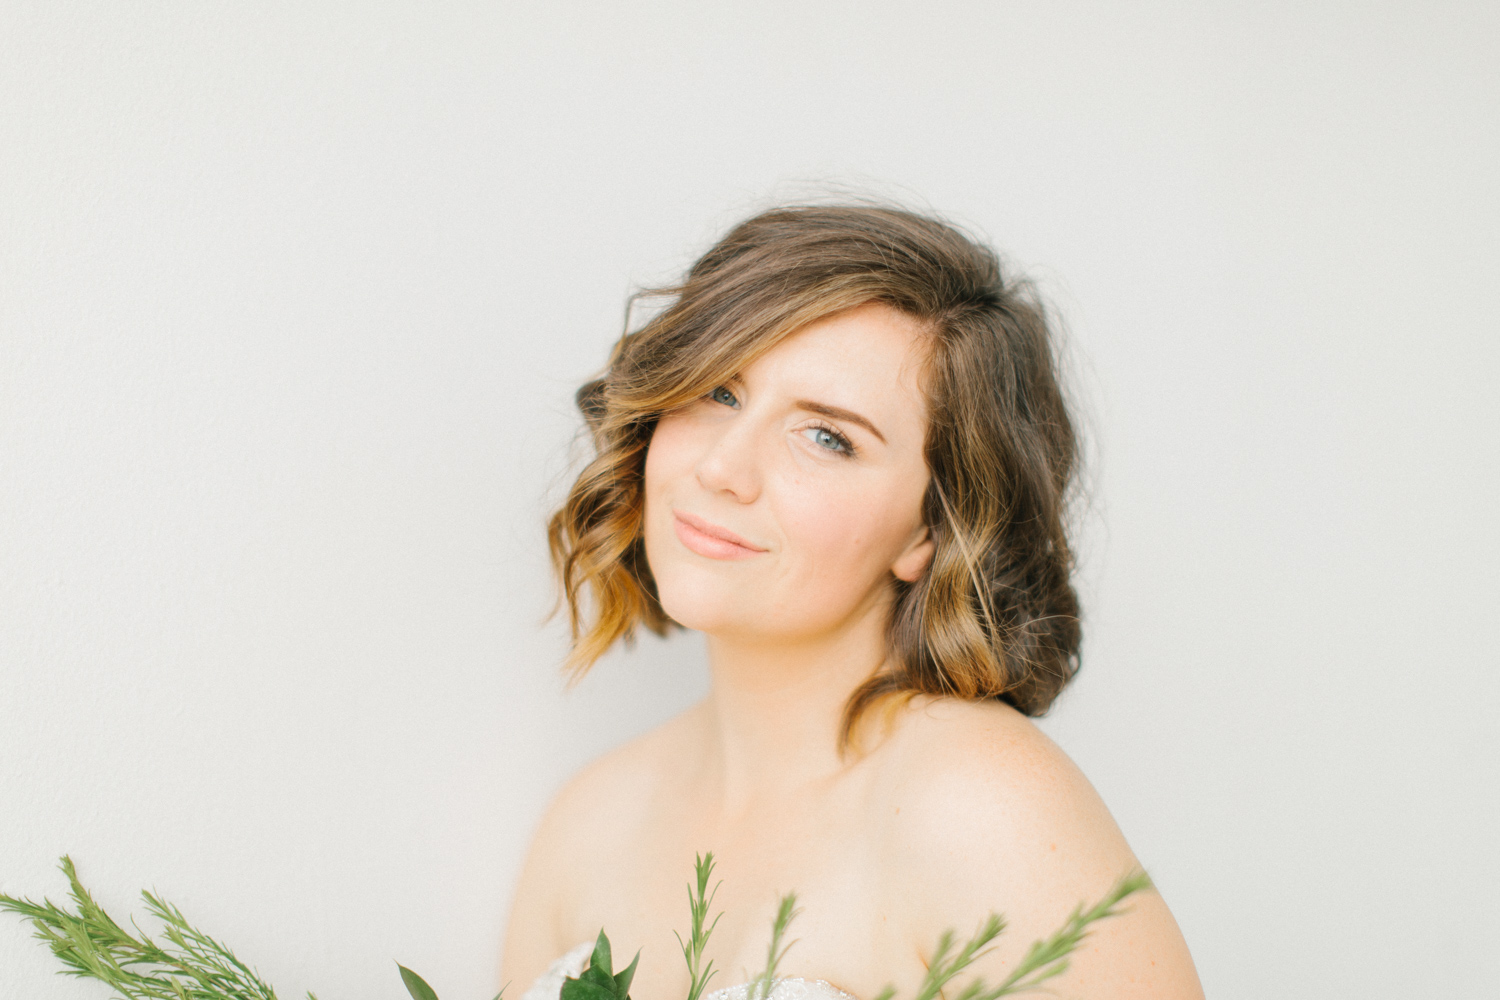 Seattle Fine Art Wedding Photographer | Seattle Downtown White Studio Bridal Session | Stunning Wedding Bouquet | Seattle Bride | Seattle Wedding | Photography Studio Space | Emma Rose Company Wedding Photography-26.jpg